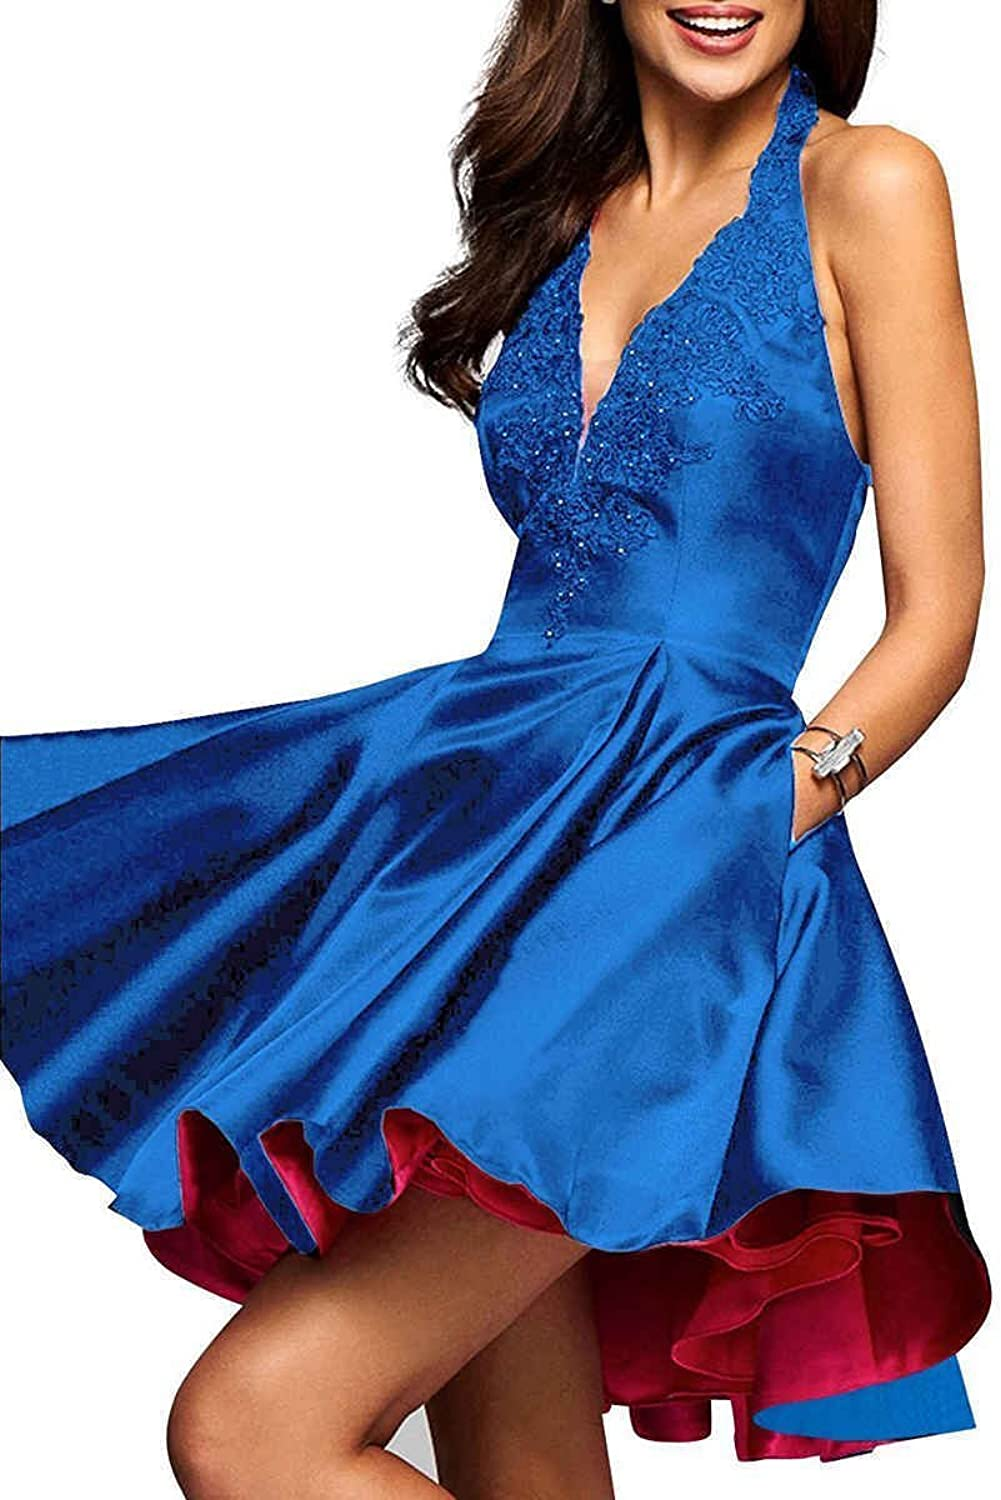 JQLD Women's A Line Satin Formal Party Prom Dress Beaded Lace Short Homecoming Dress